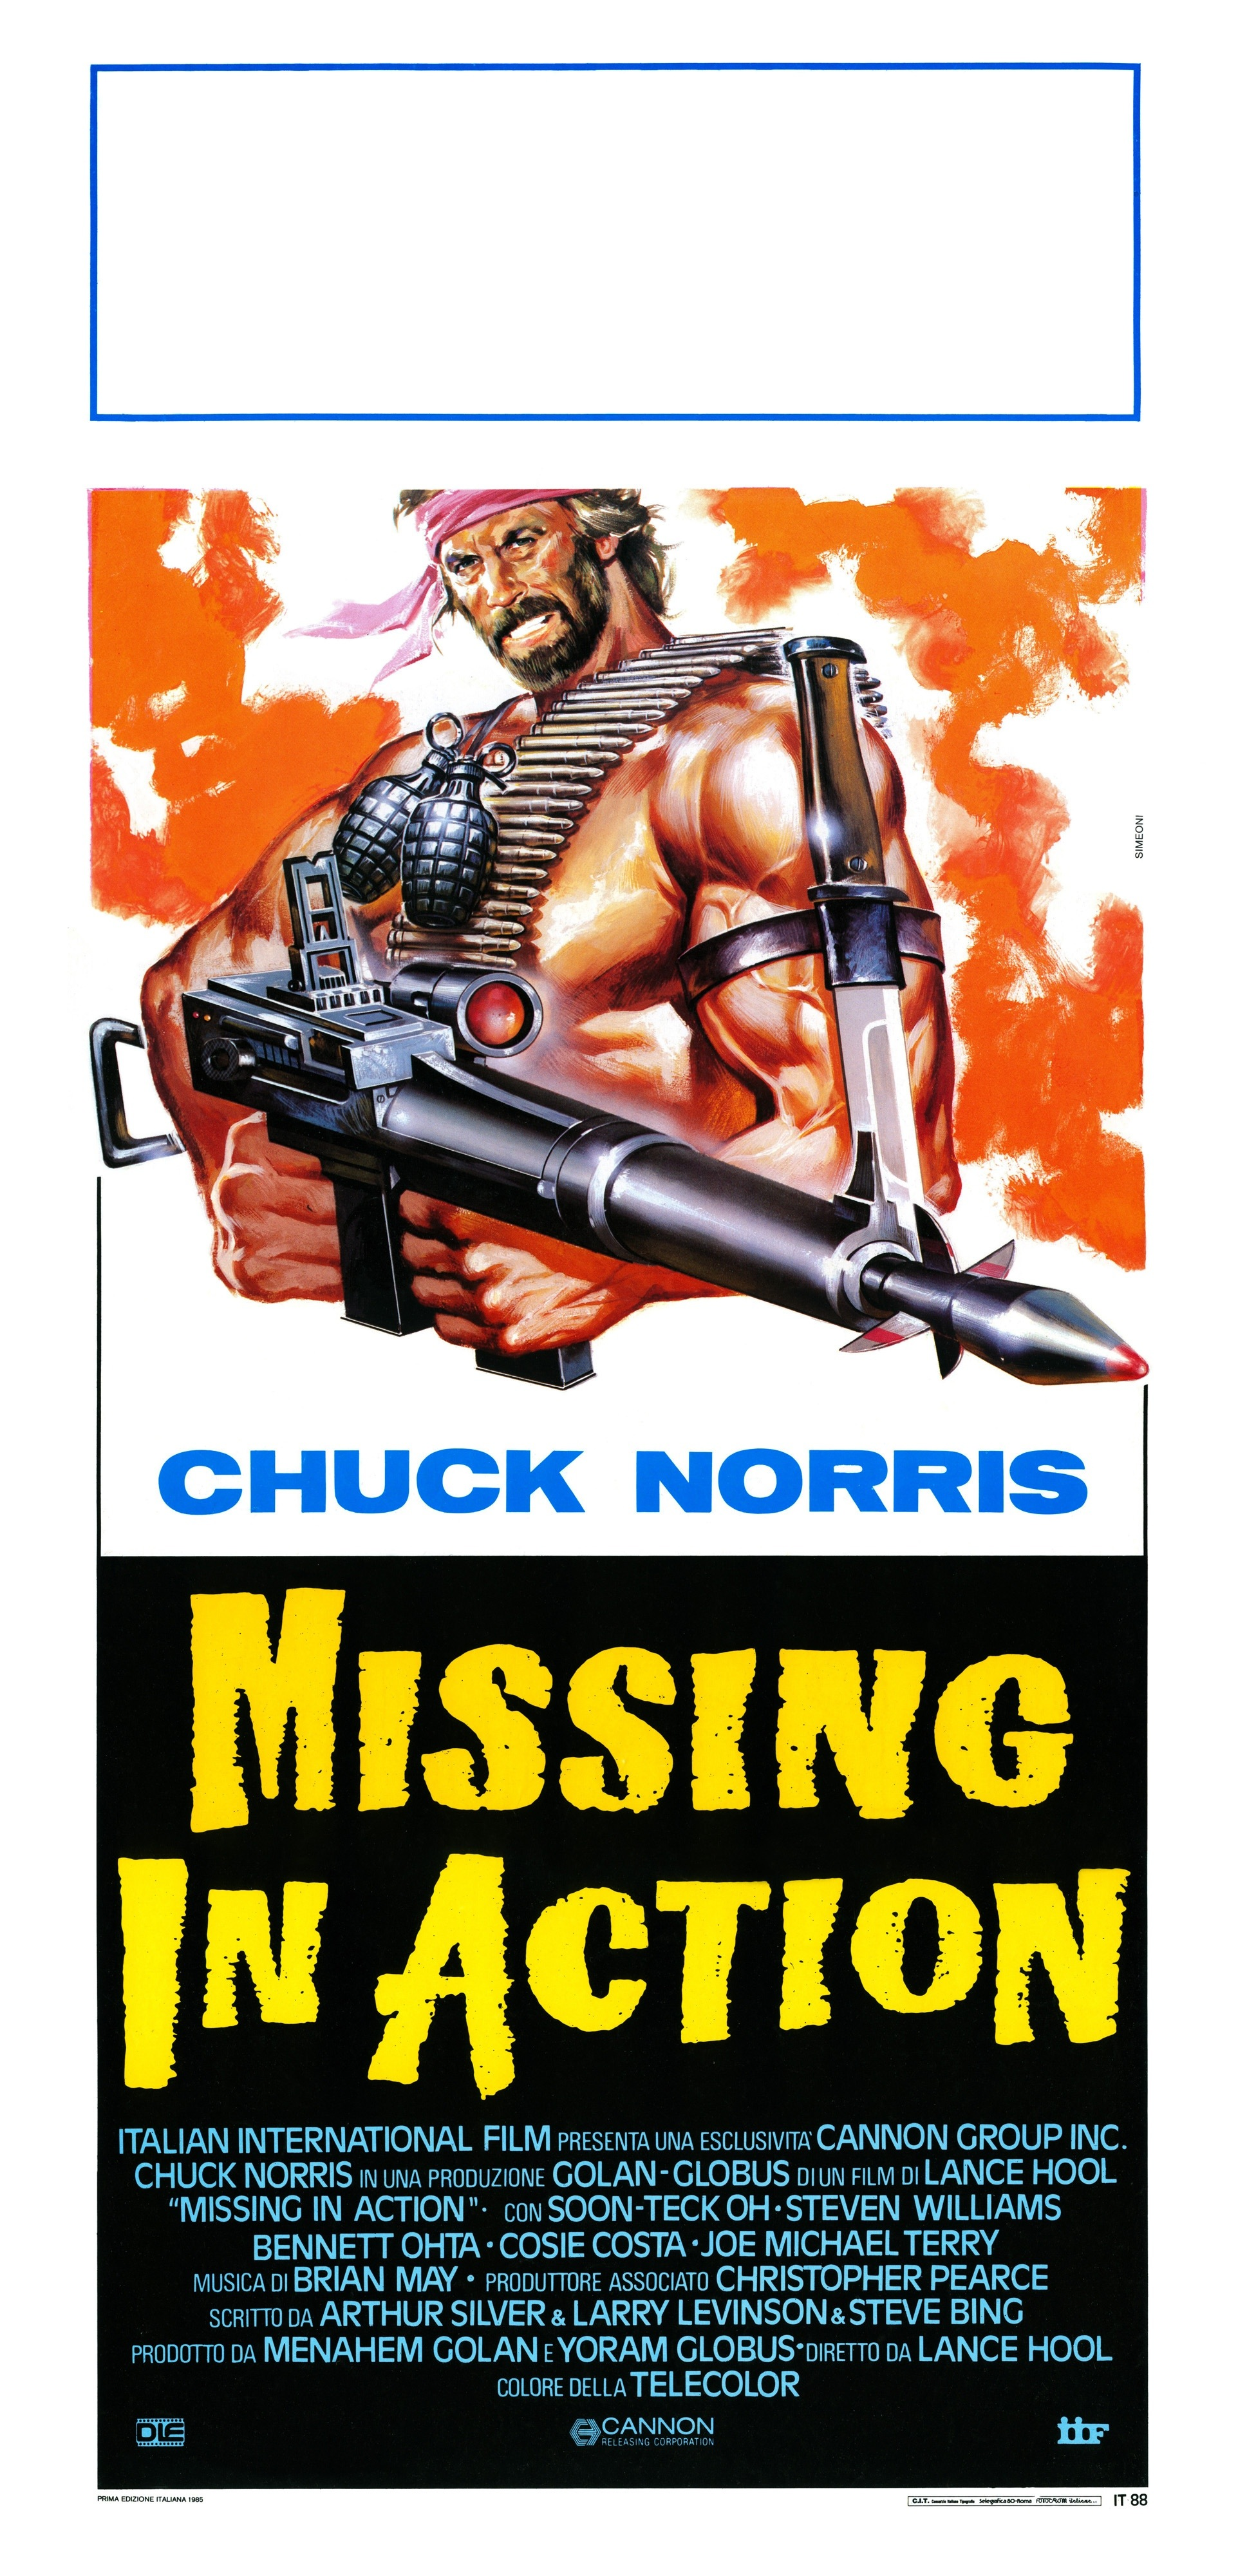 20130816 231553  Missing In Action Poster